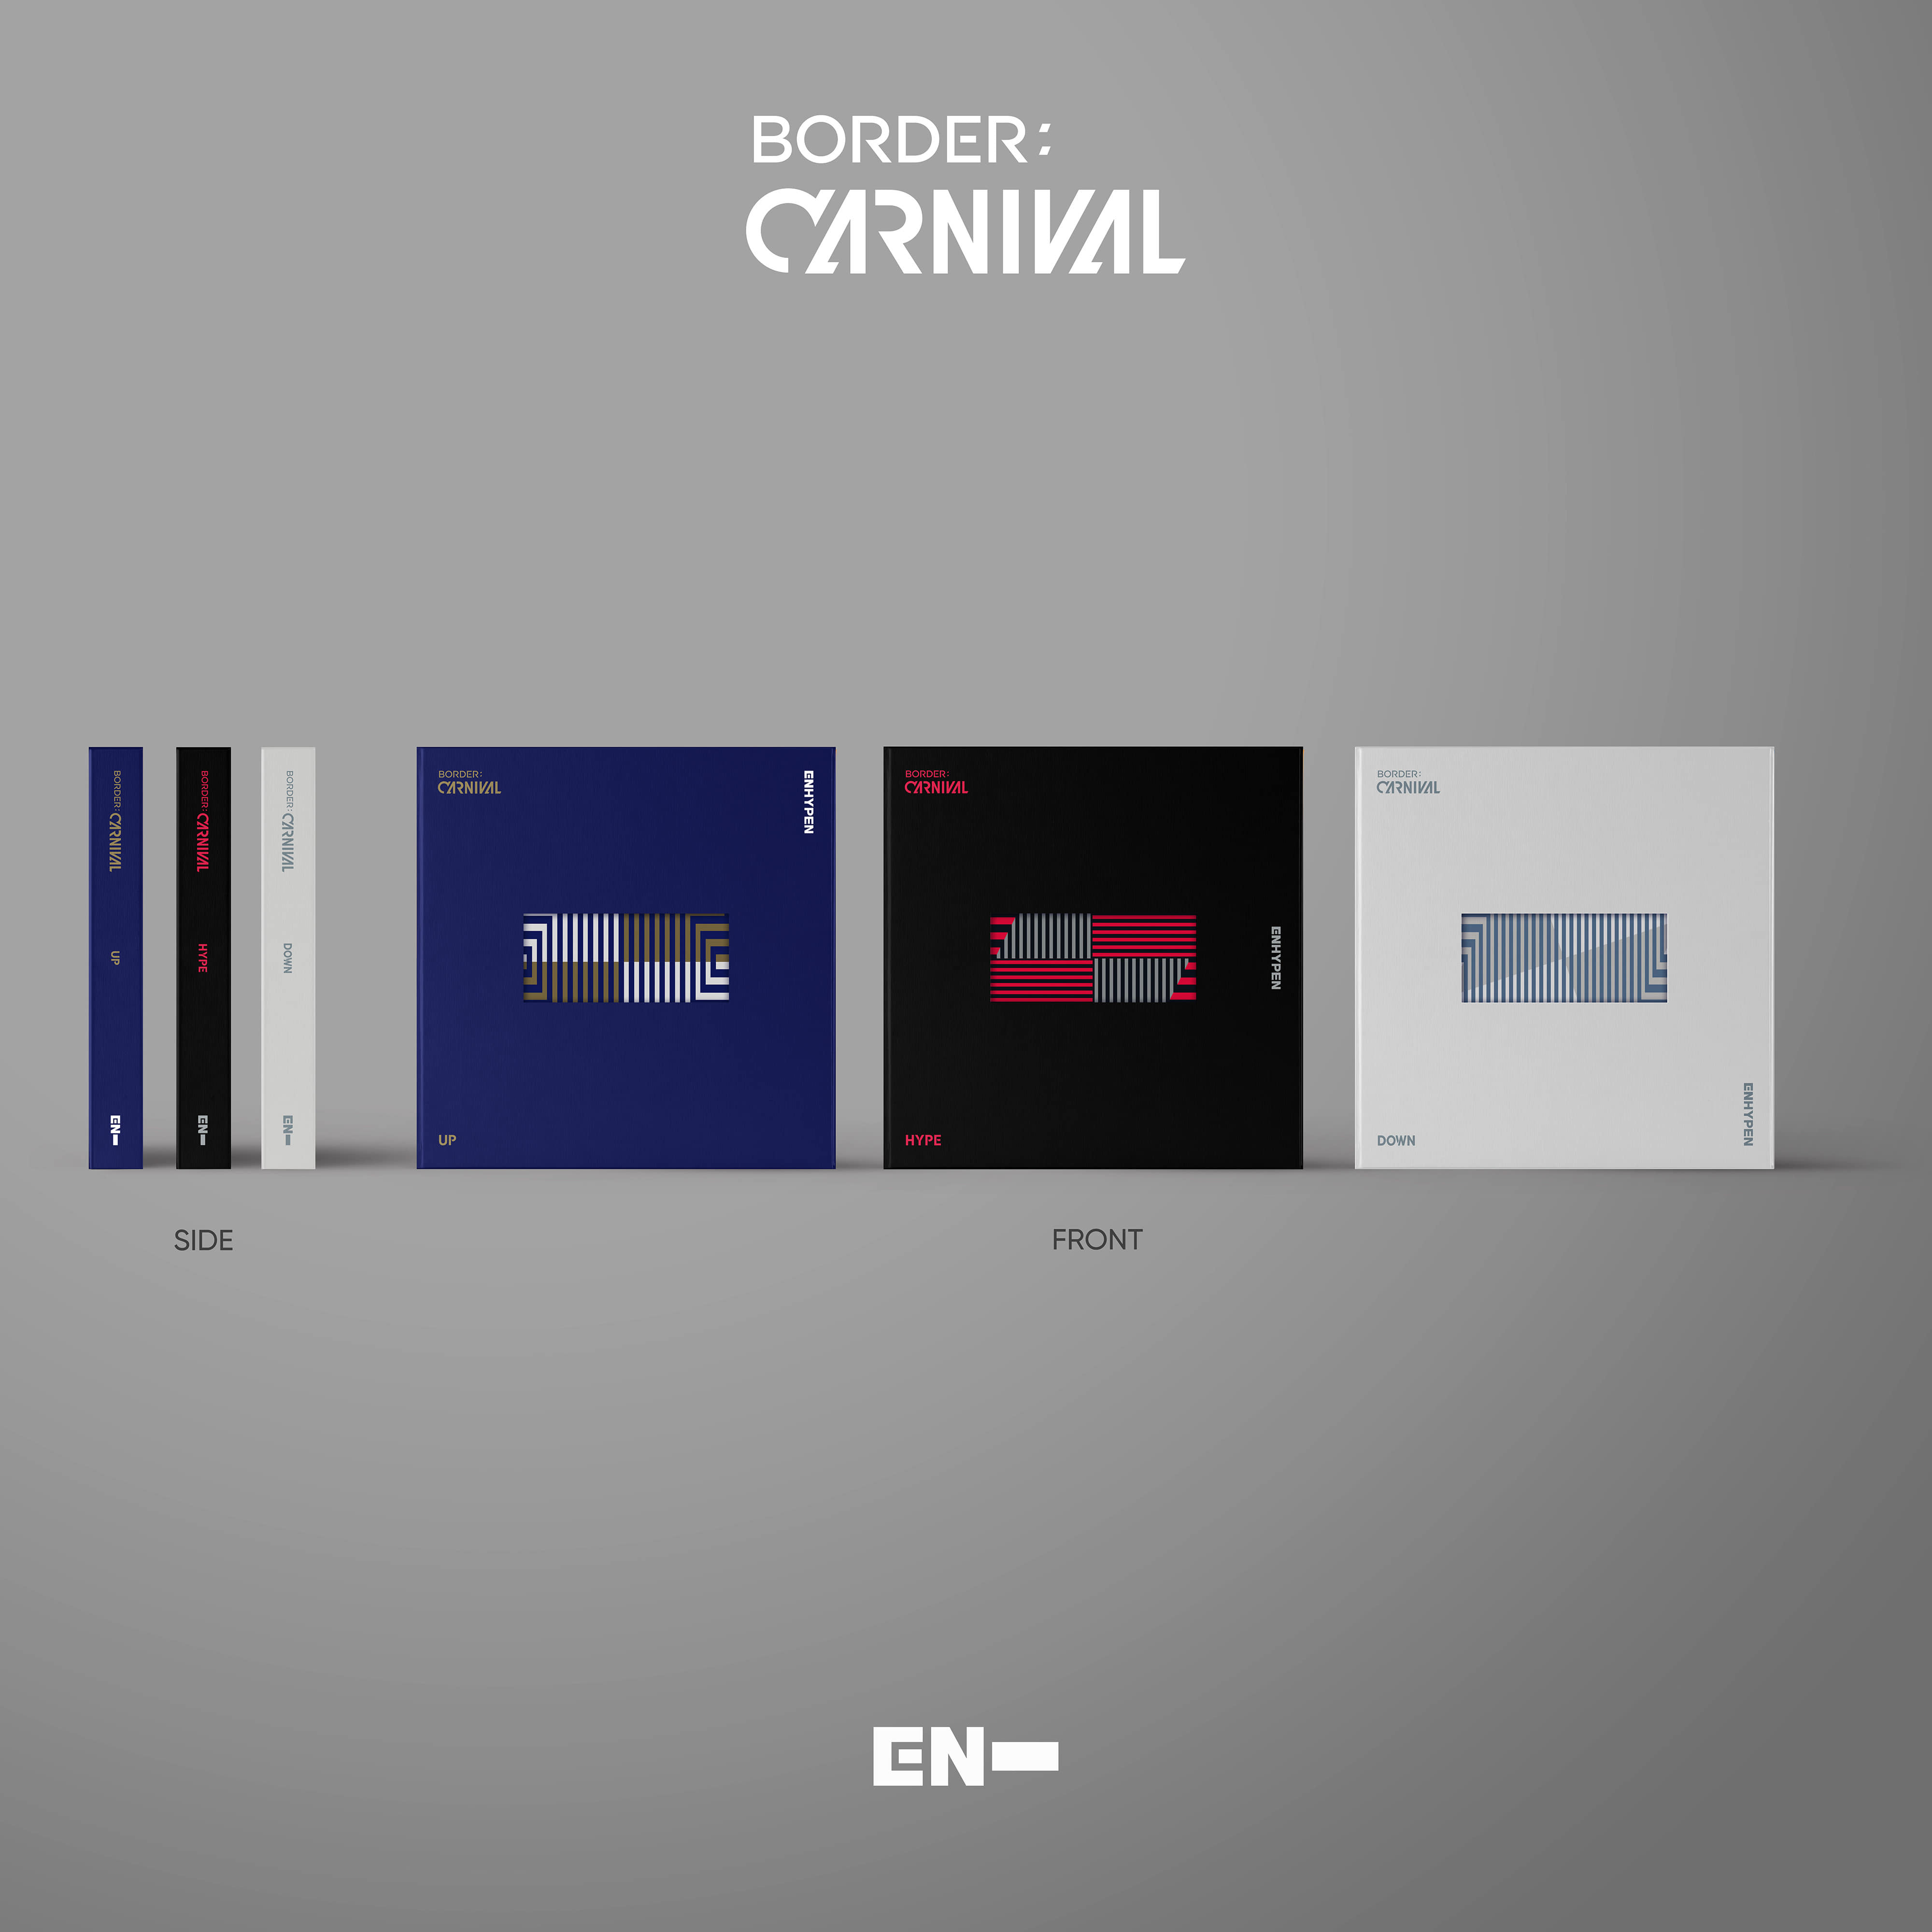 [PRE-ORDER] 엔하이픈(ENHYPEN) - 2ND MINI ALBUM [BORDER : CARNIVAL] (UP Ver. + HYPE Ver. + DOWN Ver. = 3CD SET)케이팝스토어(kpop store)